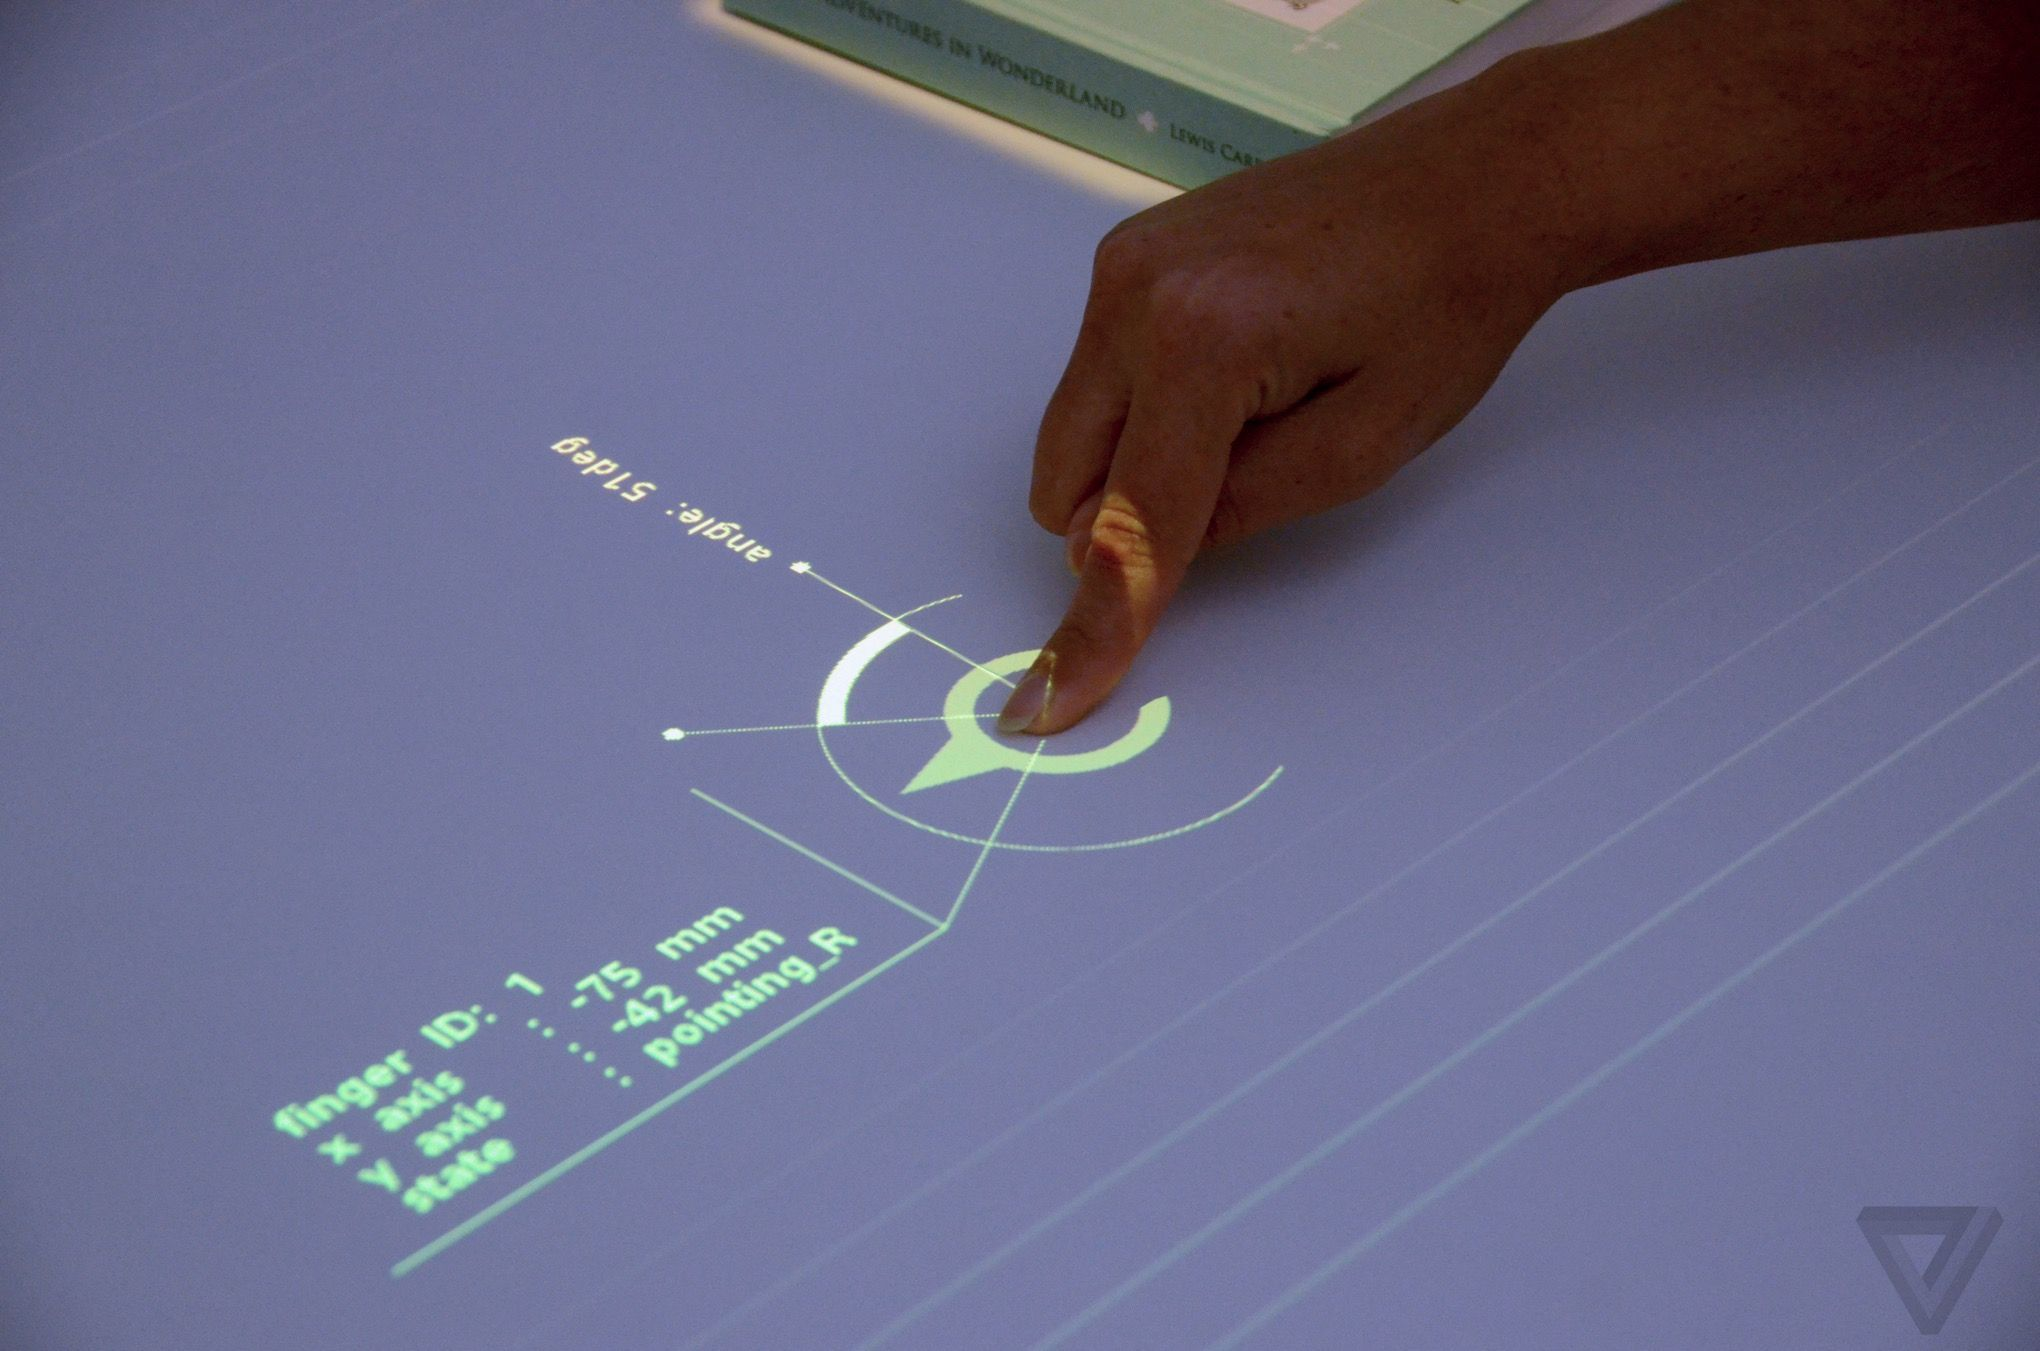 Sonyus prototype projector turns any tabletop into a touchsensitive